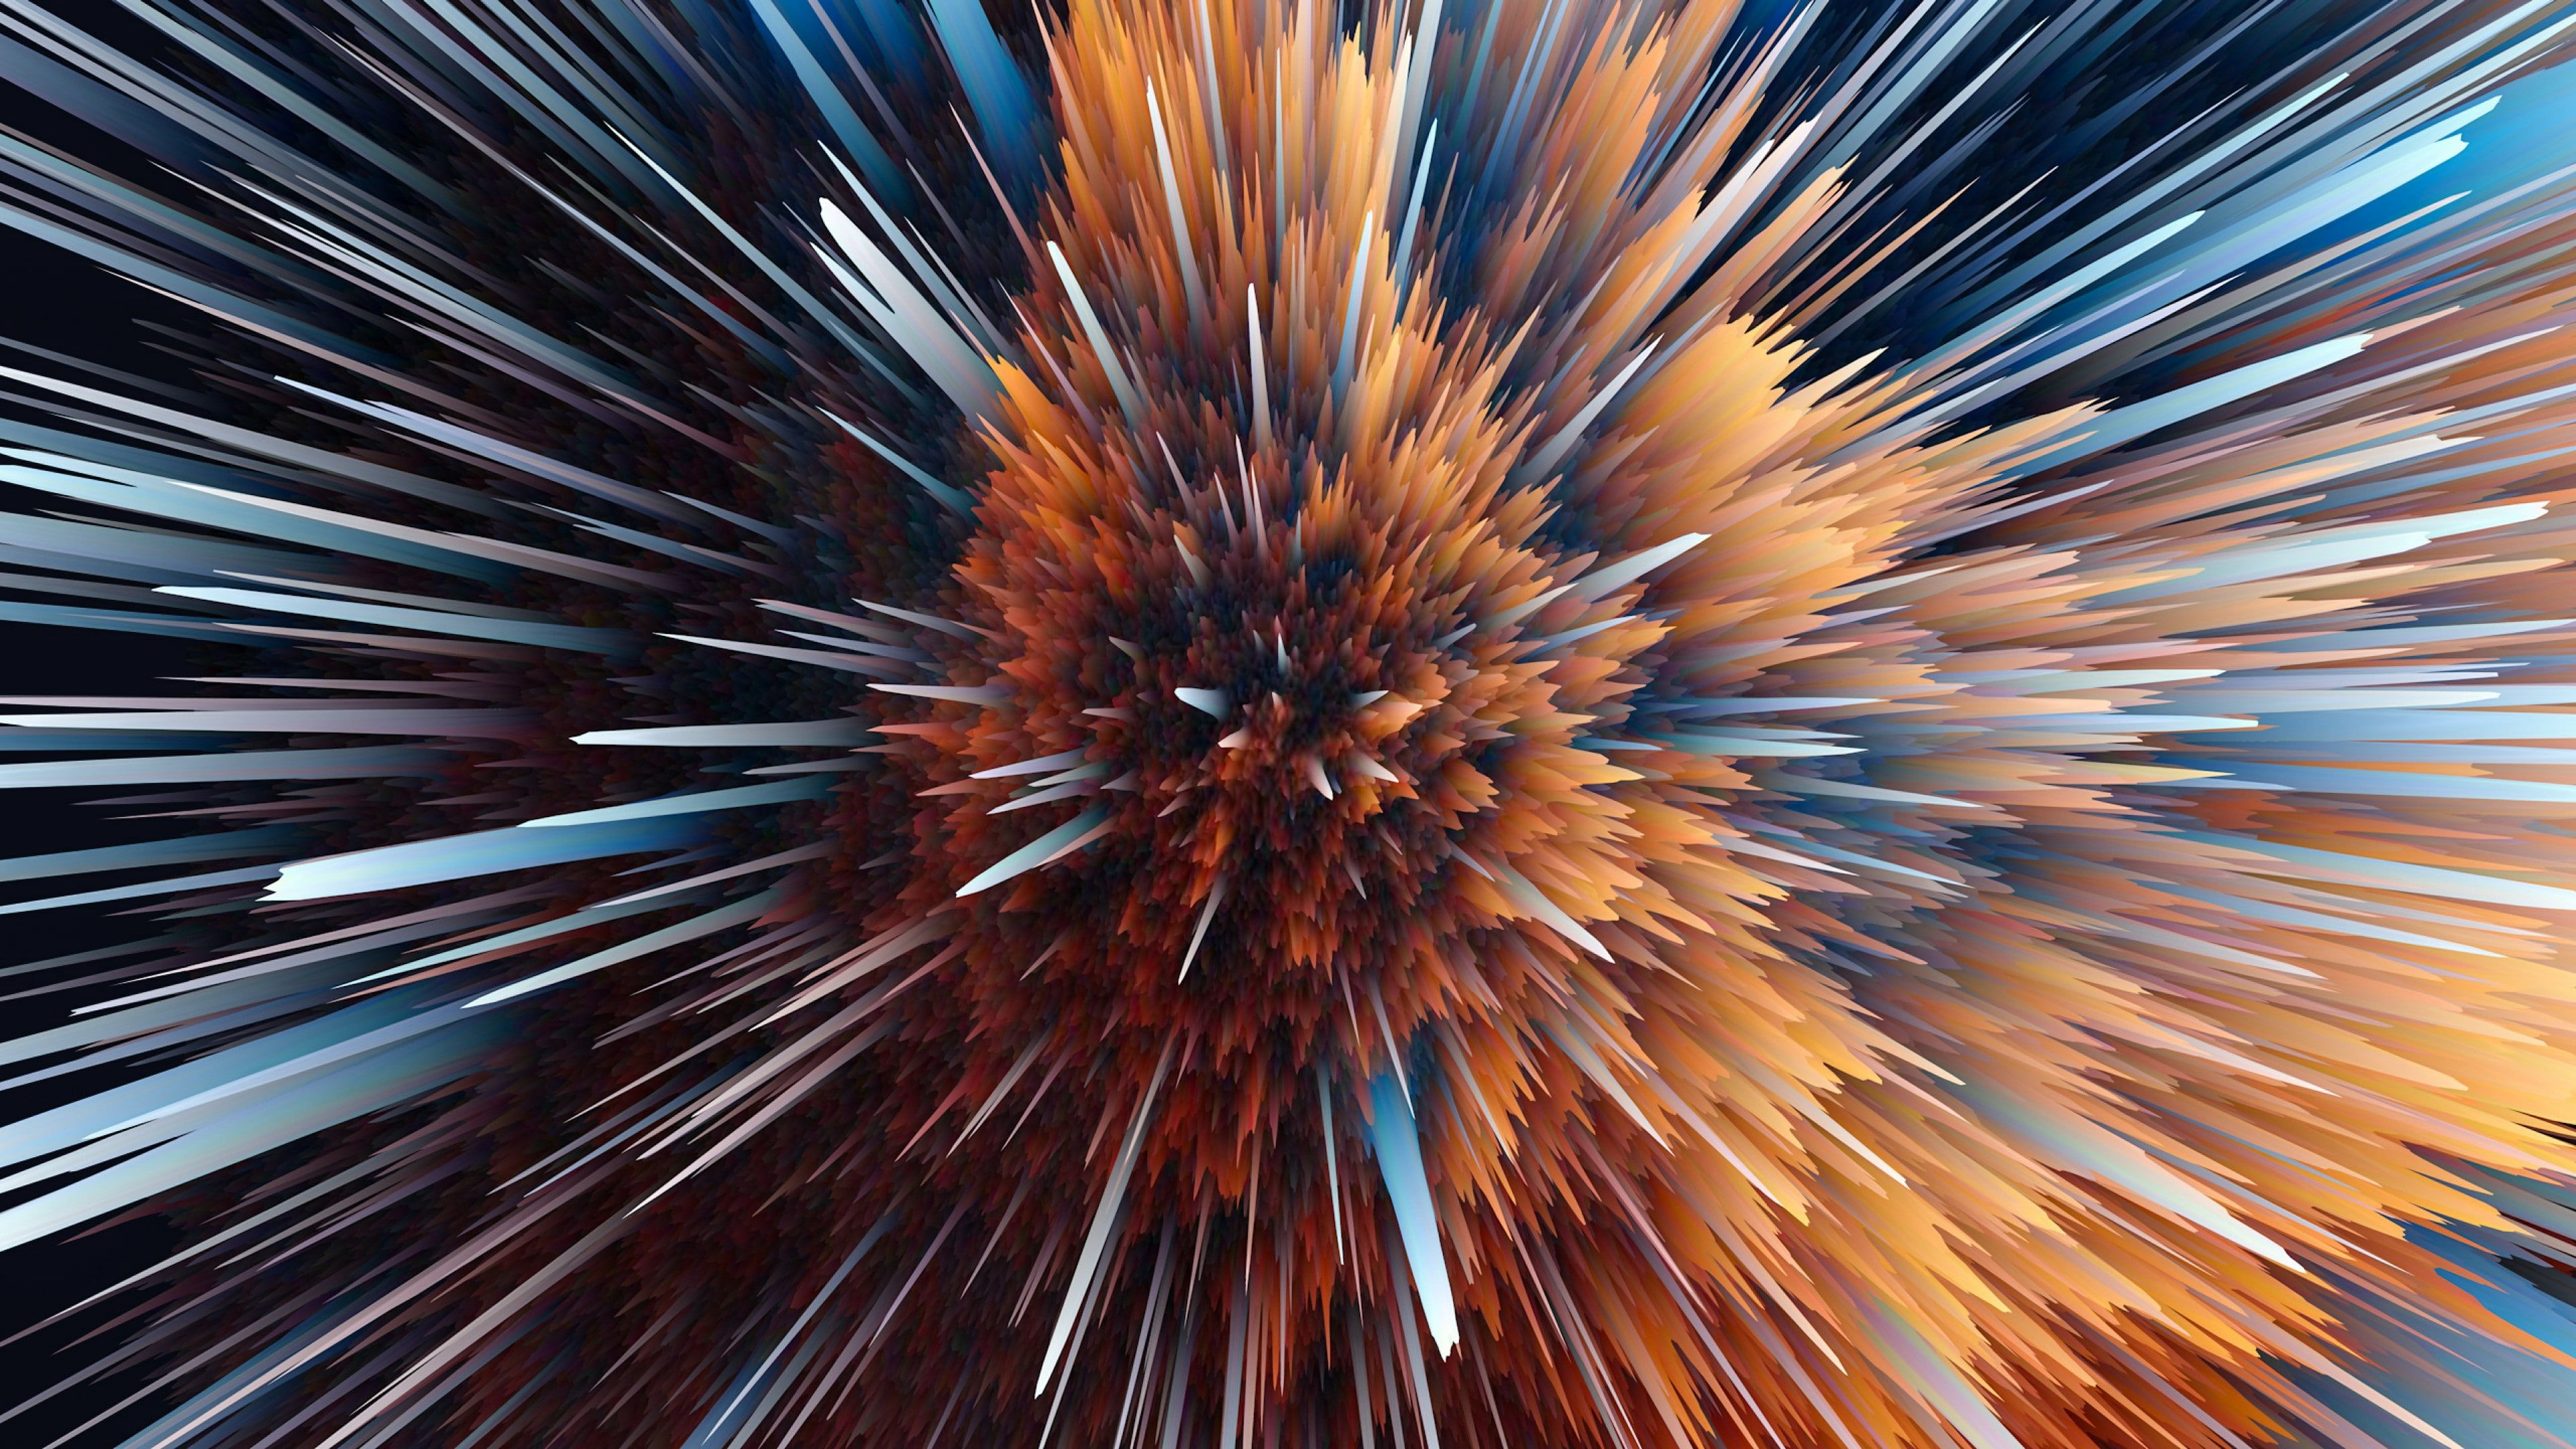 Explosion Particle Abstraction Abstract Art Graphics 4k Wallpaper Hdwallpape Computer Wallpaper Desktop Wallpapers Abstract Wallpaper Computer Wallpaper